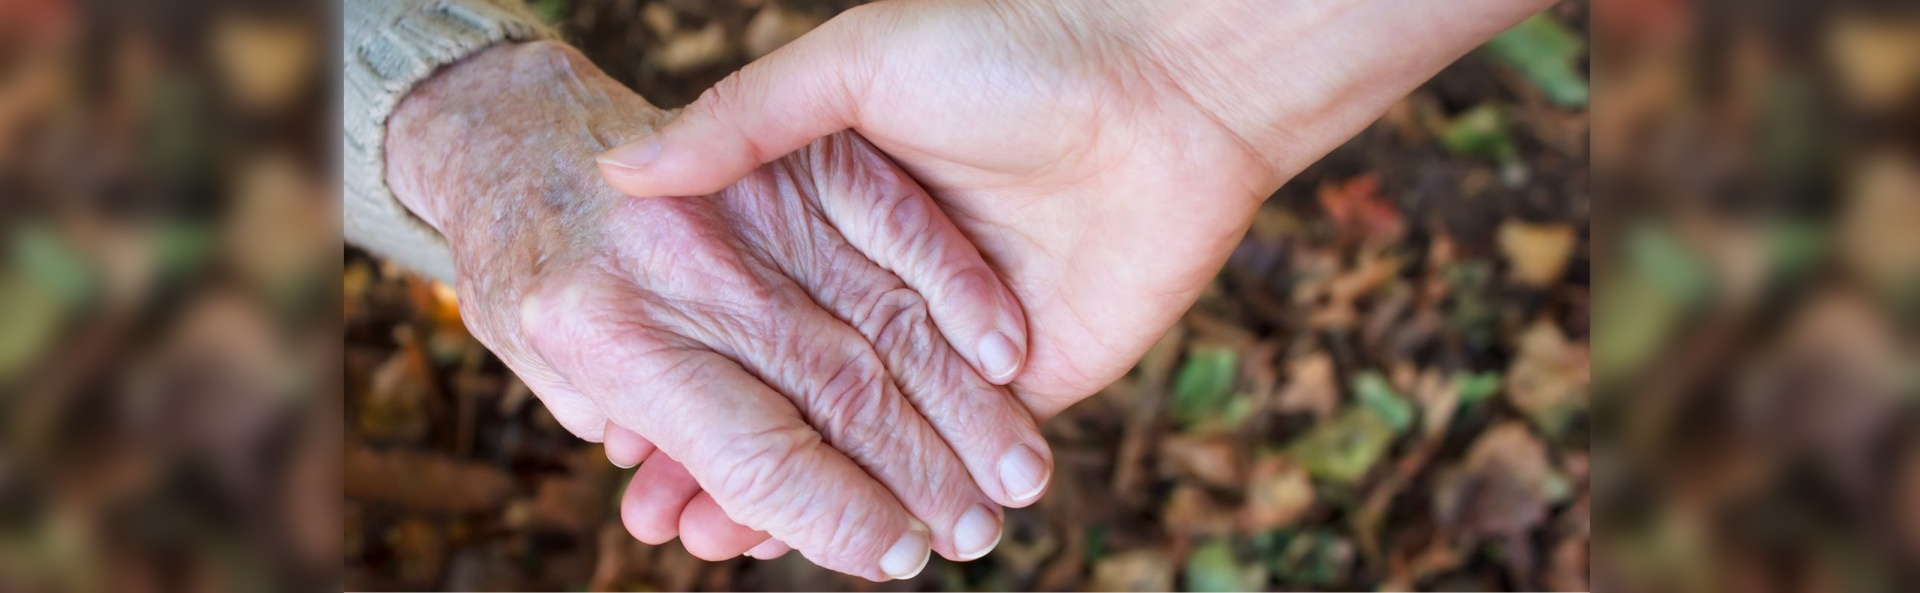 Young_and_senior_holding_hands_over_autumn_leaves_-_1920x593px.jpg